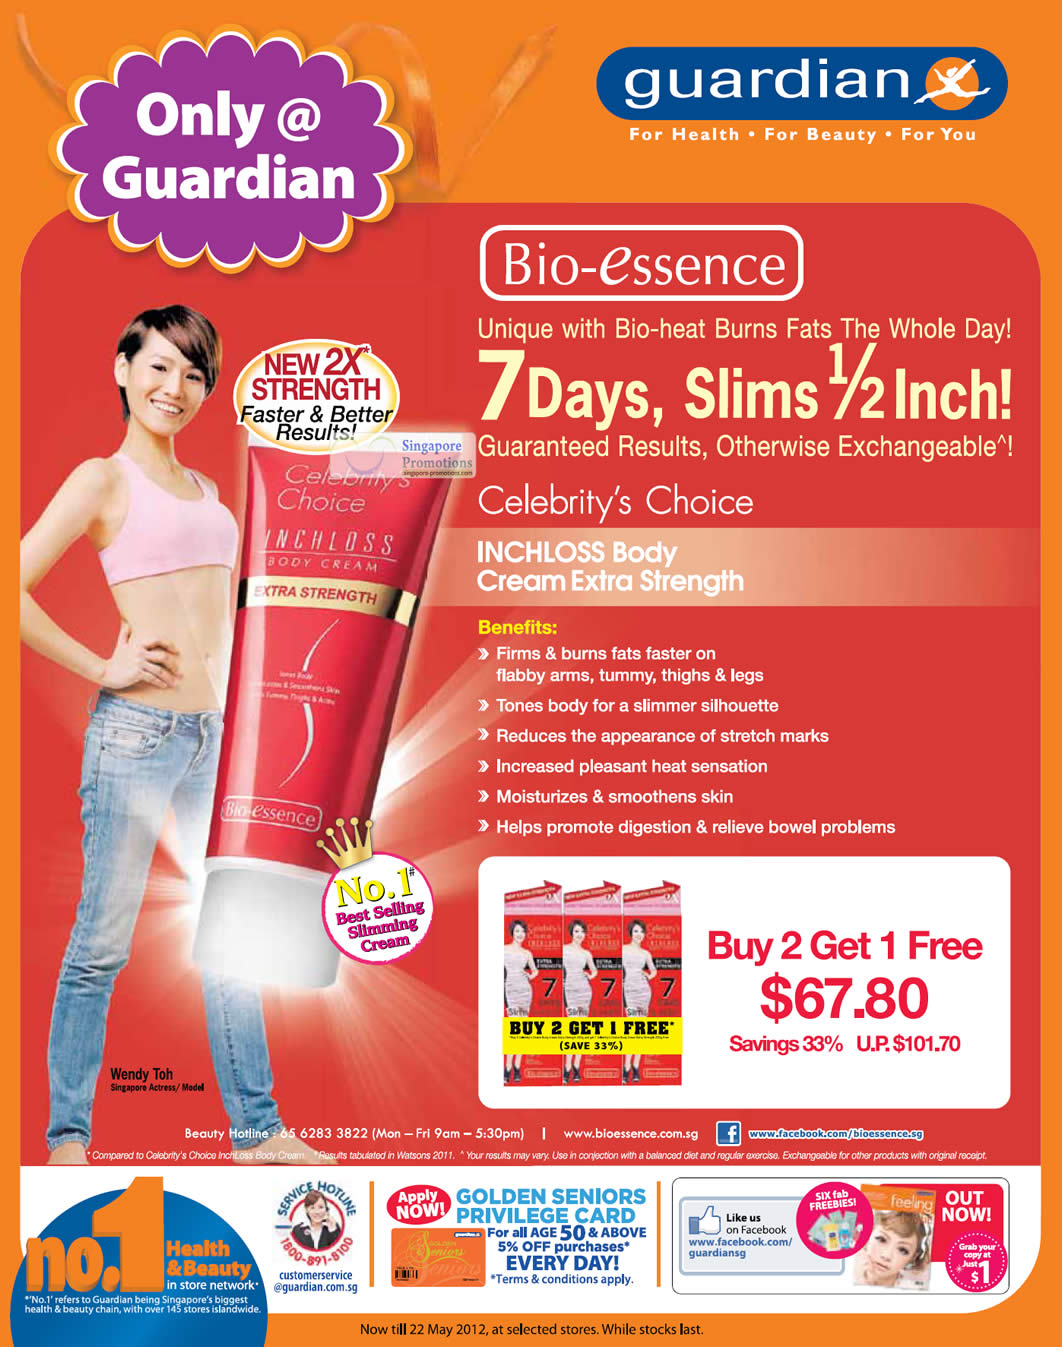 Bio-Essence Celebritys Choice INCHLOSS Body Cream